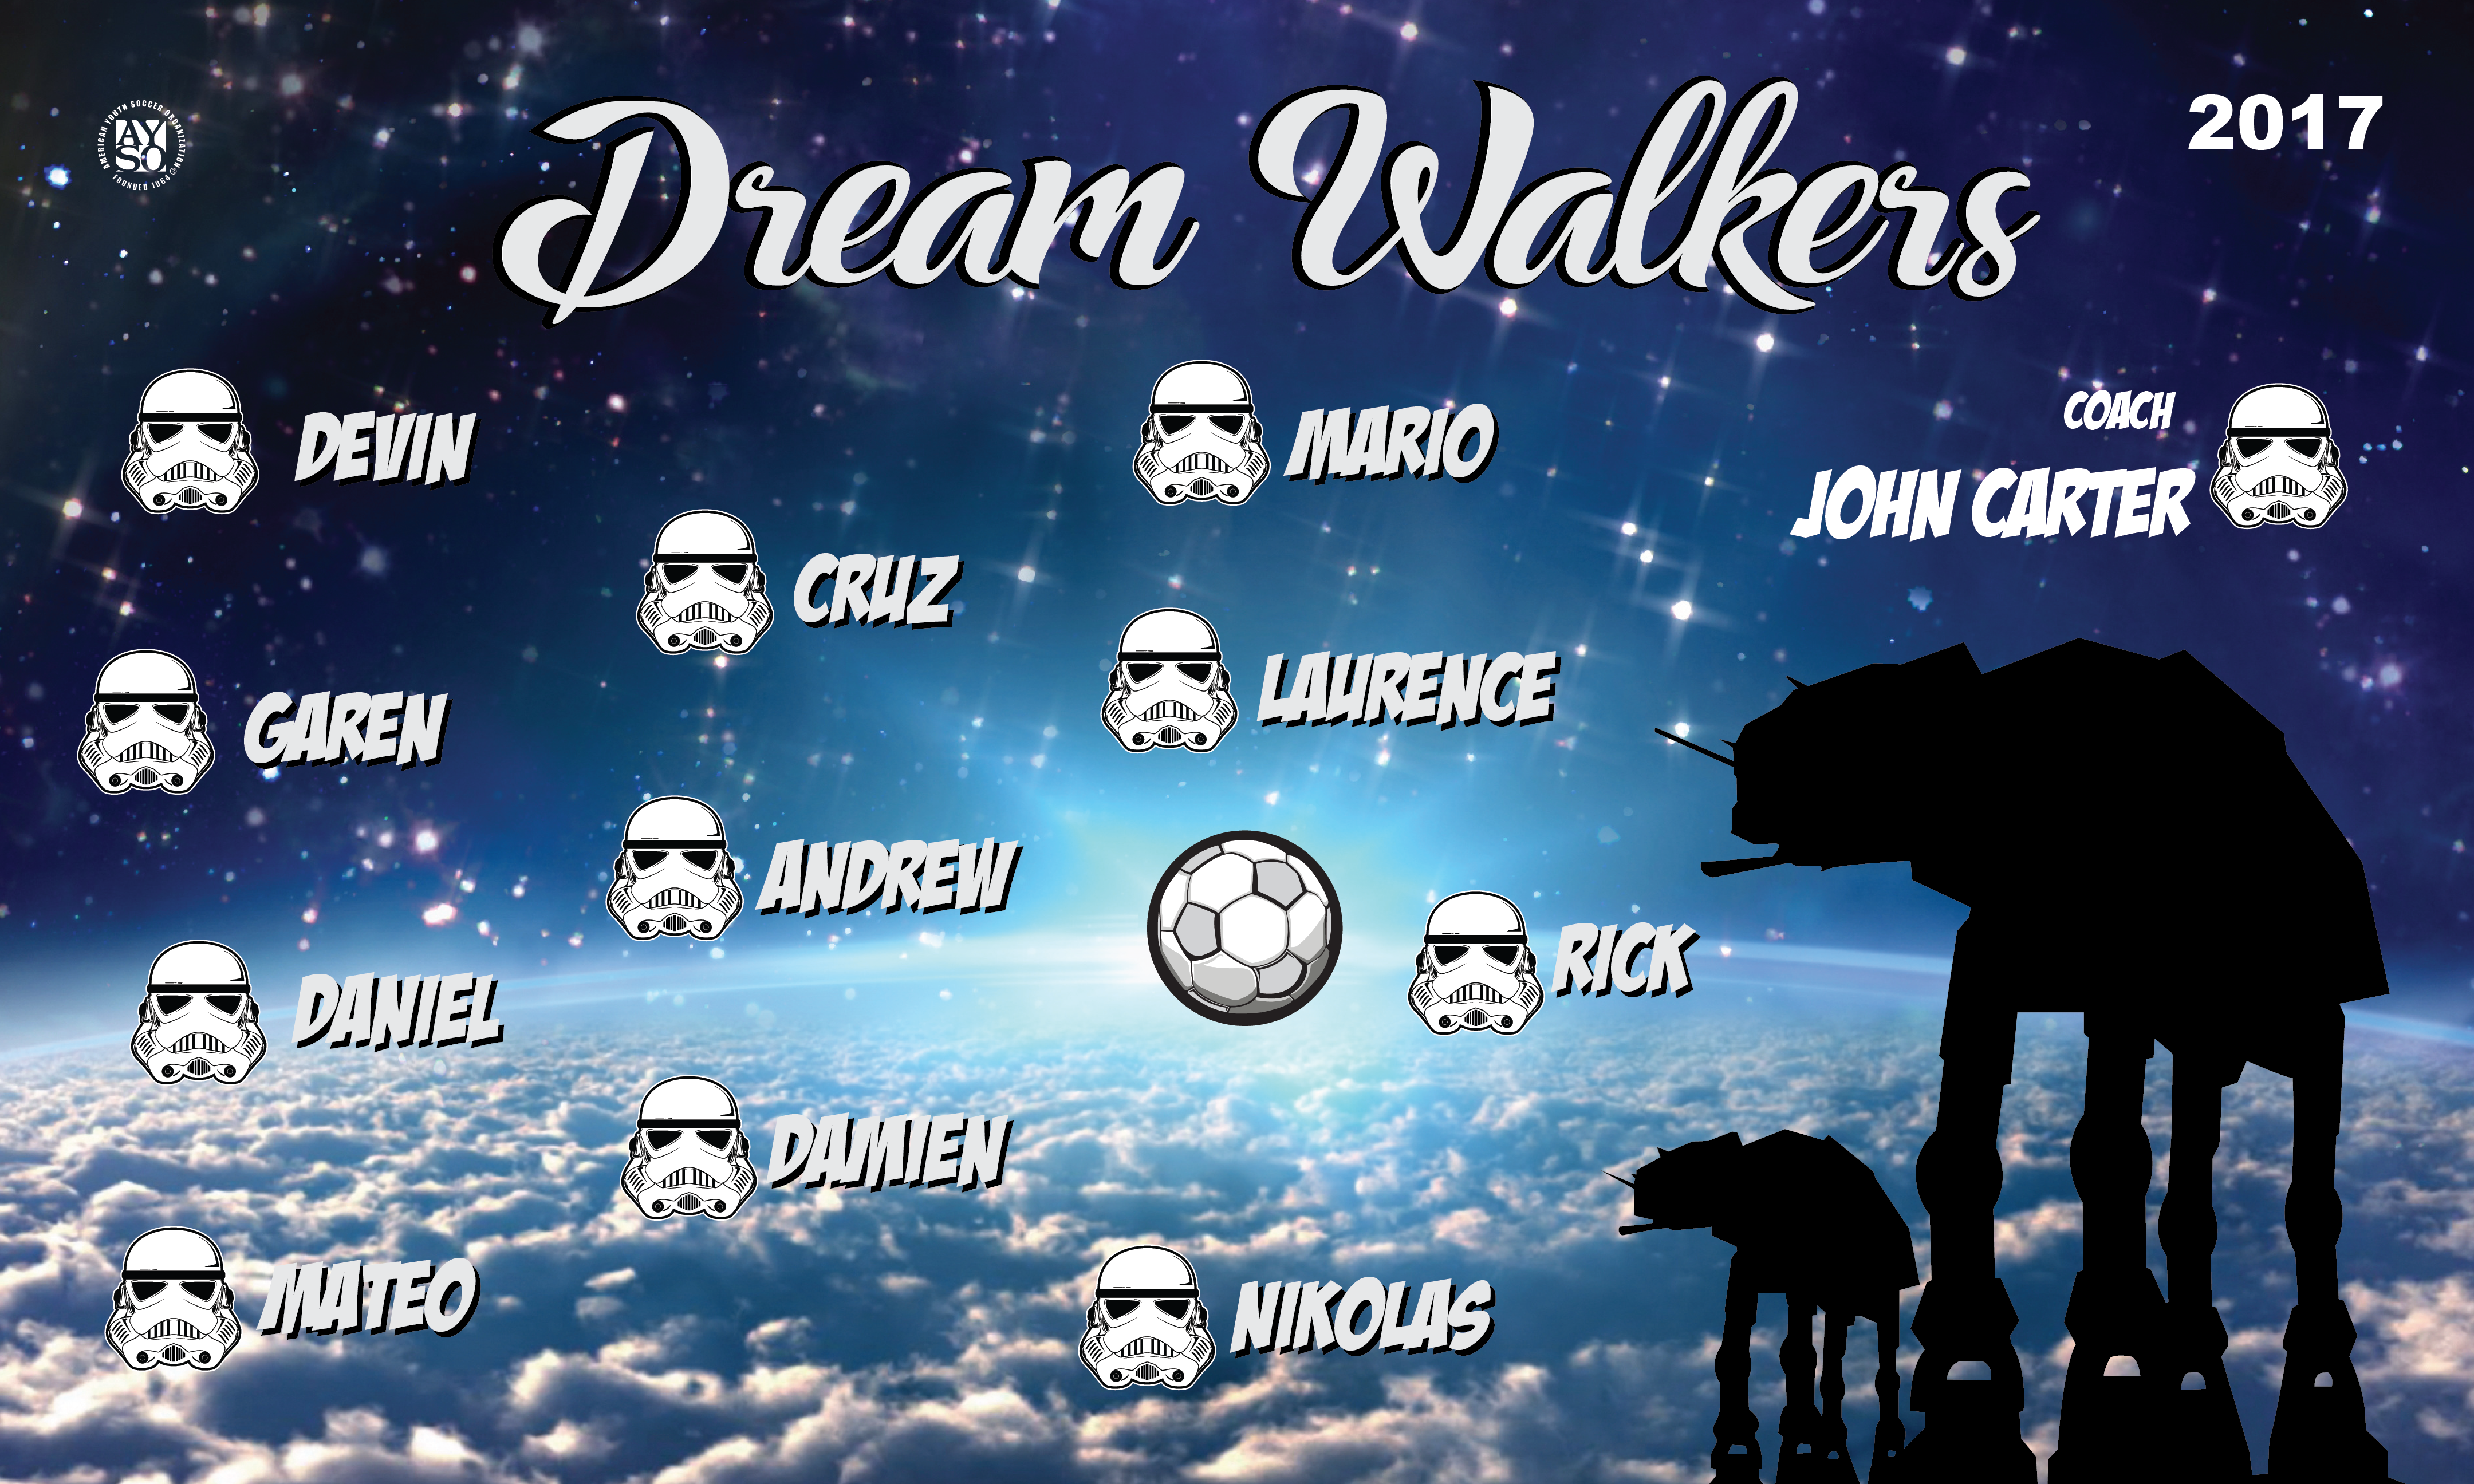 B2164 Dream Walkers 3x5 Banner